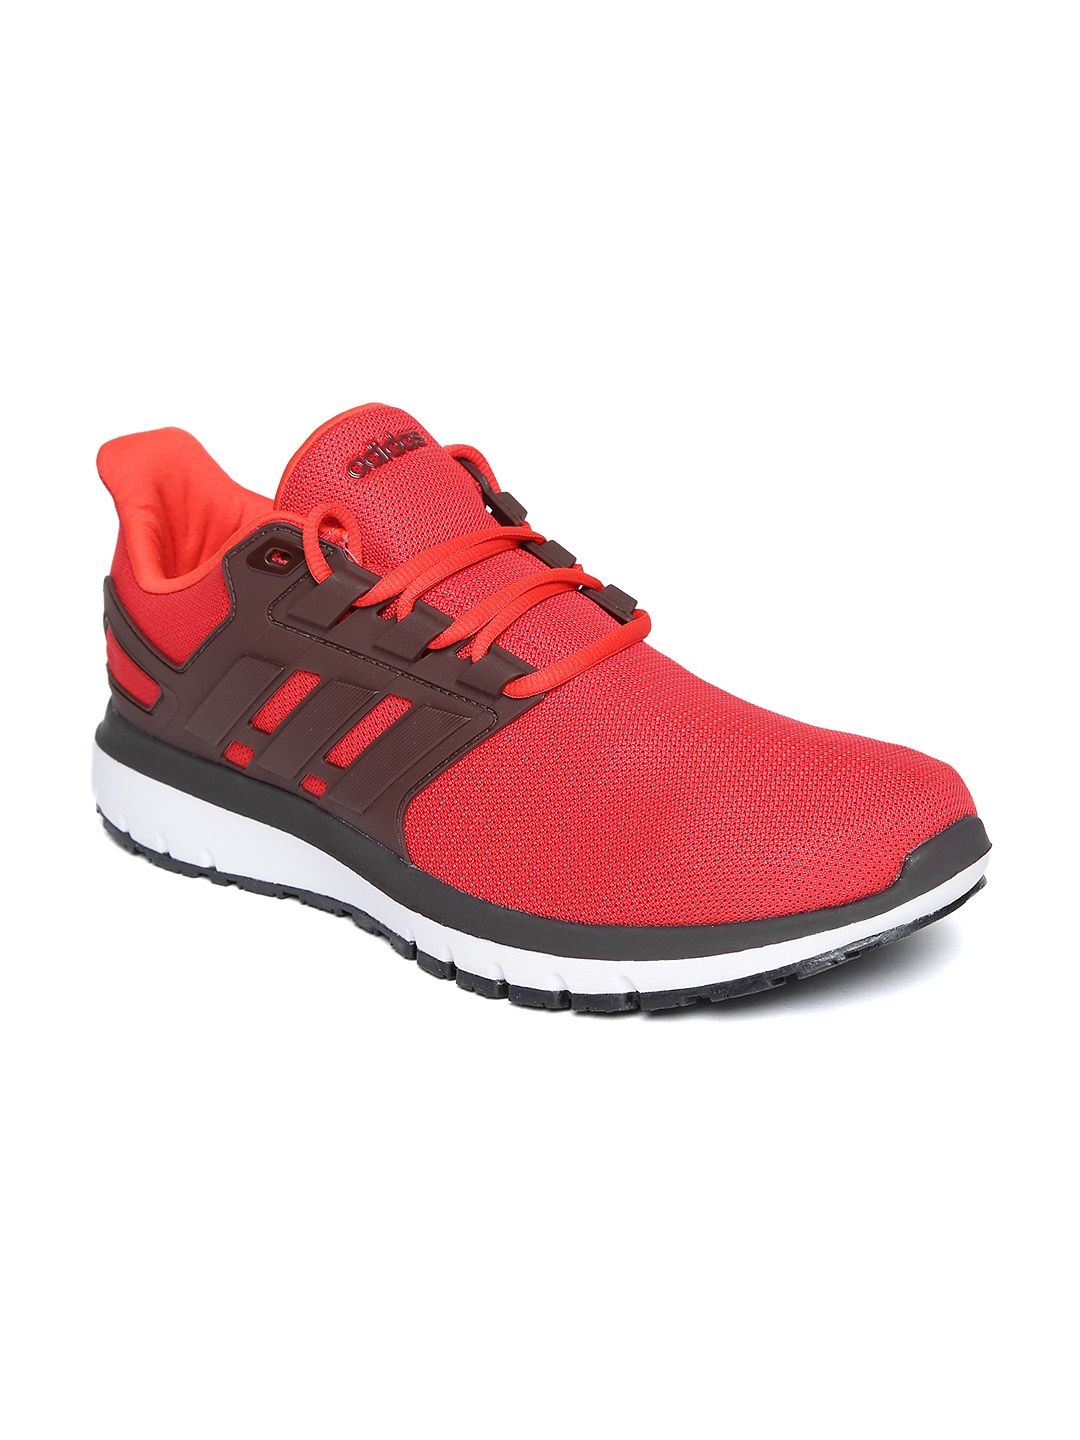 173c6c69b Buy Adidas Men Red   Brown Energy Cloud 2 Running Shoes - Sports ...